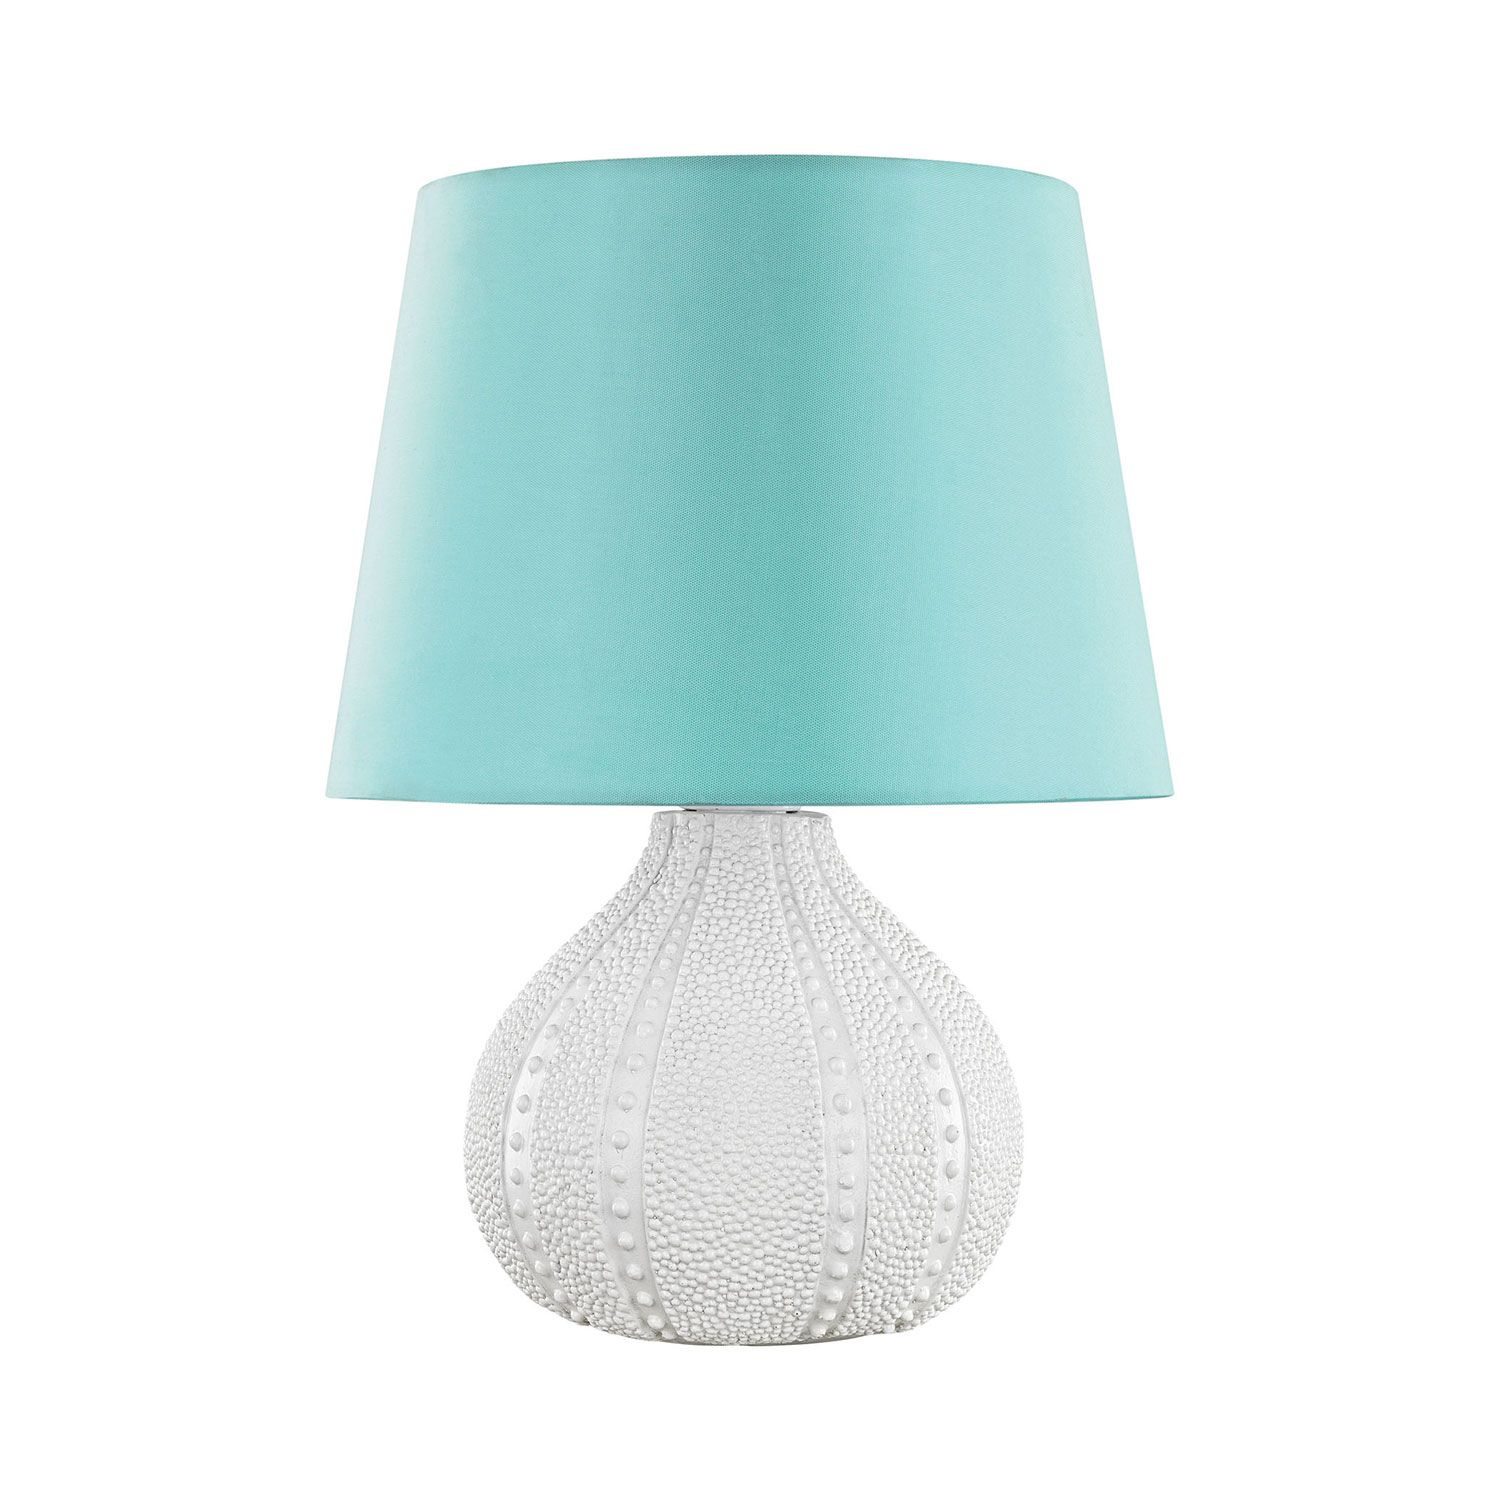 The Story of the Green Lamp: A Summary 45